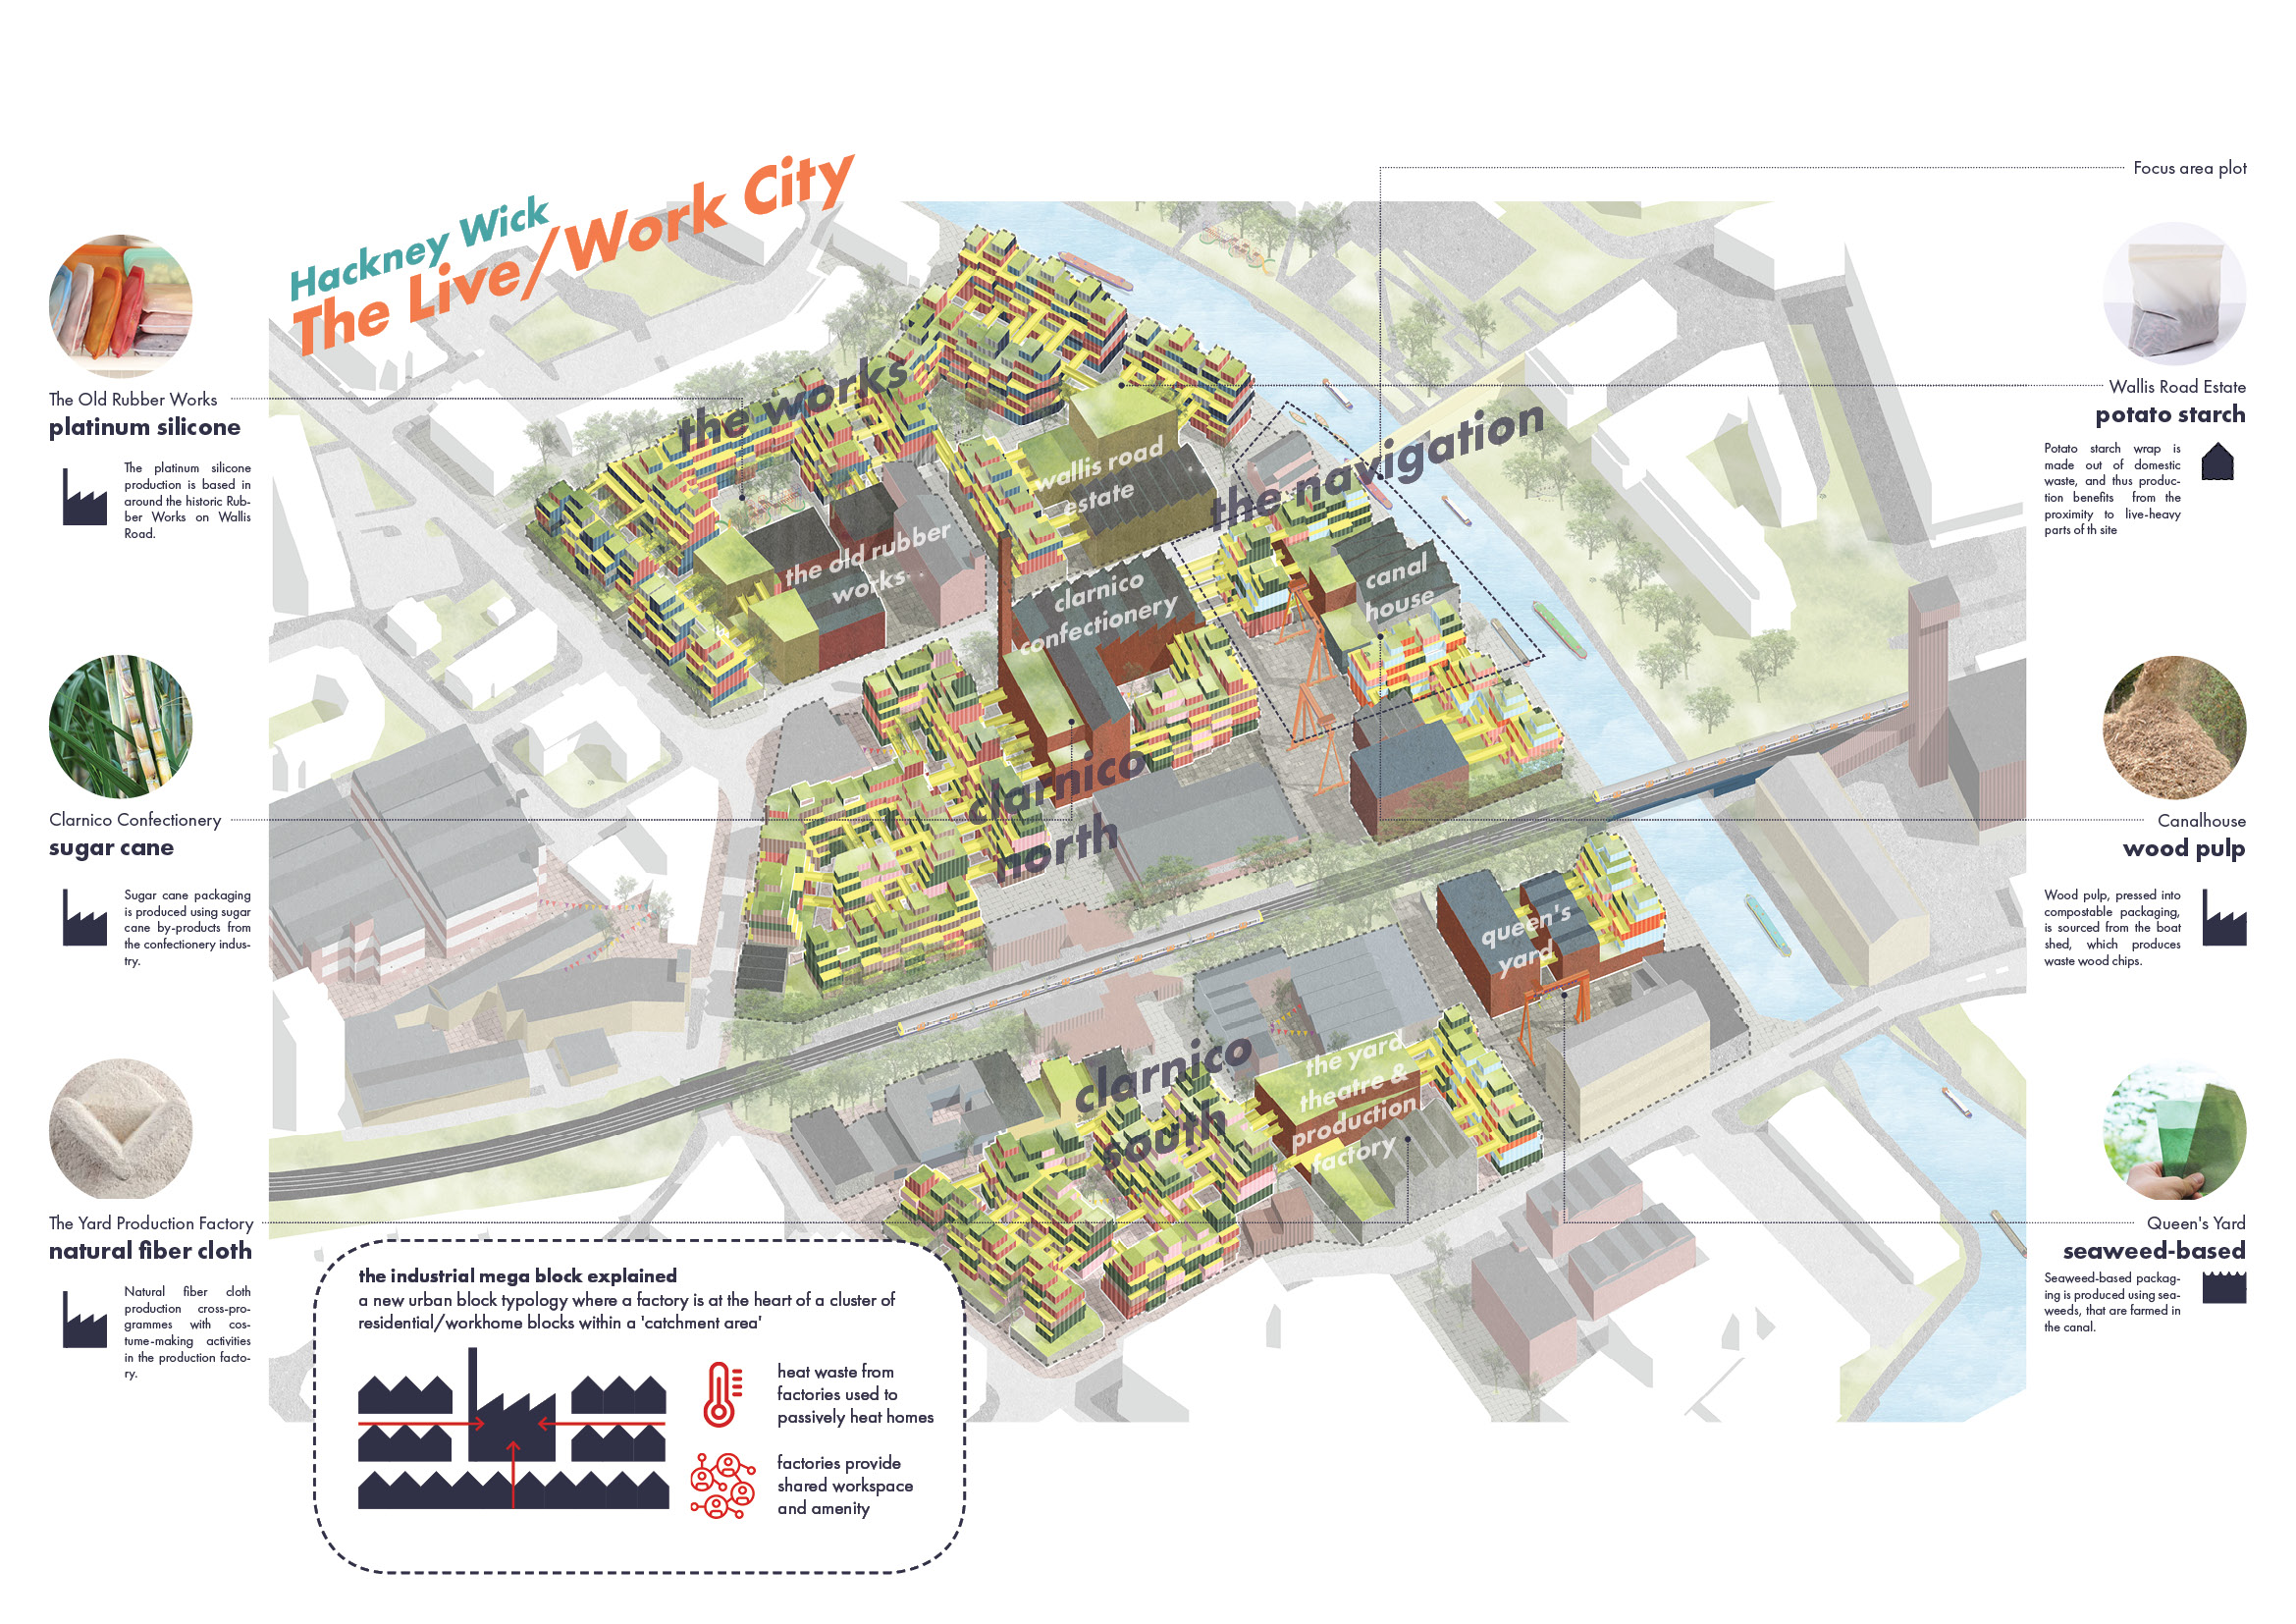 The Live/Work City masterplan drawing